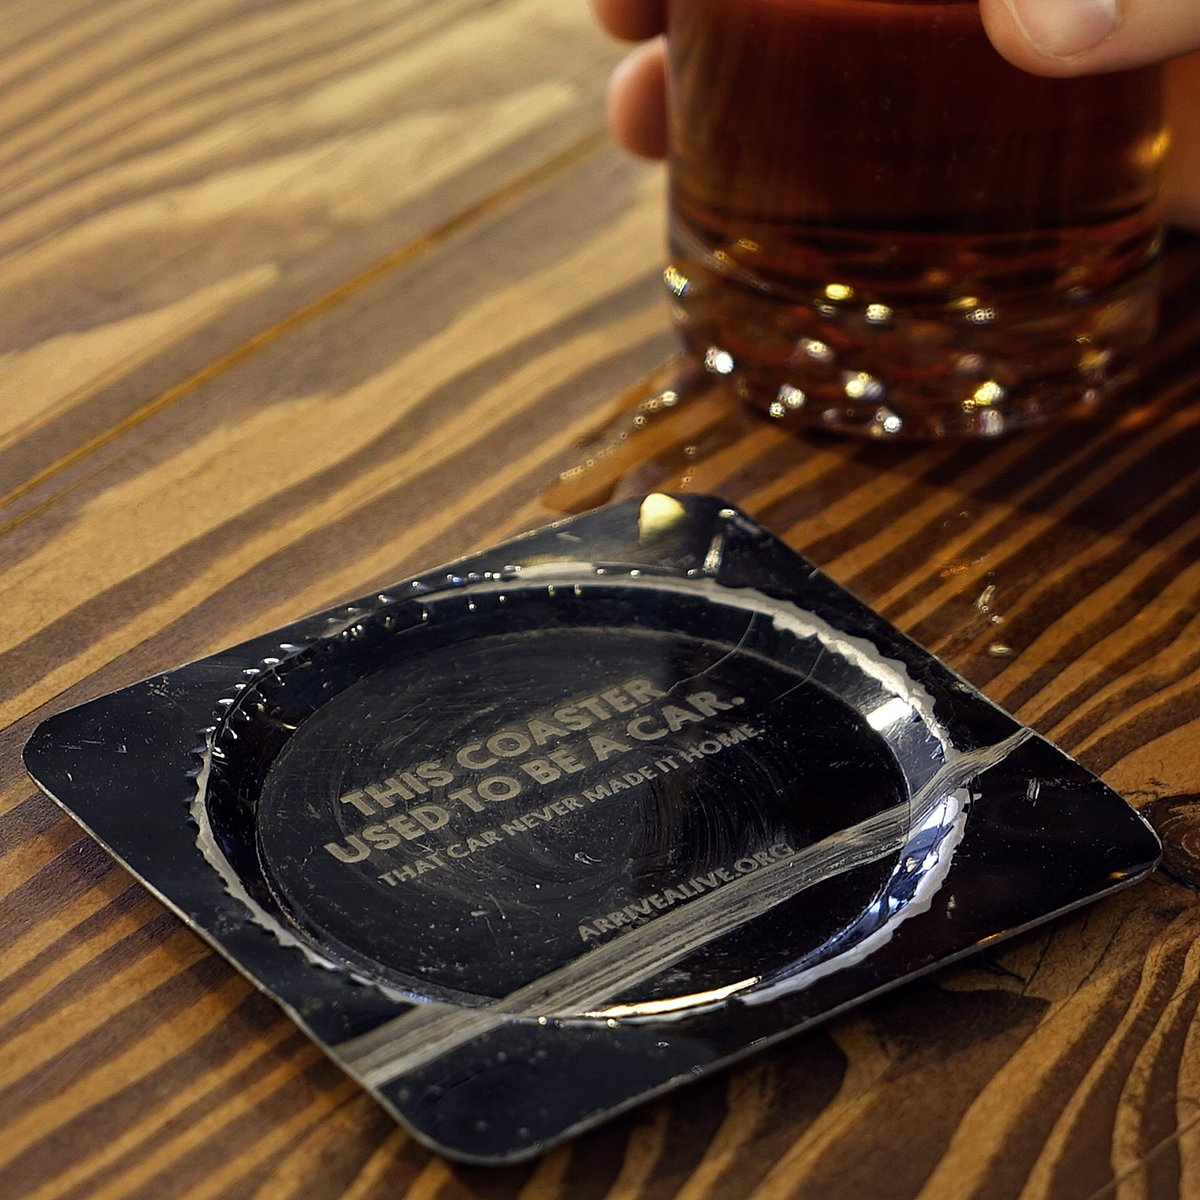 Coasters made from car wrecks are being served at Toronto's The Emmet Ray bar for St. Patrick's Day weekend.